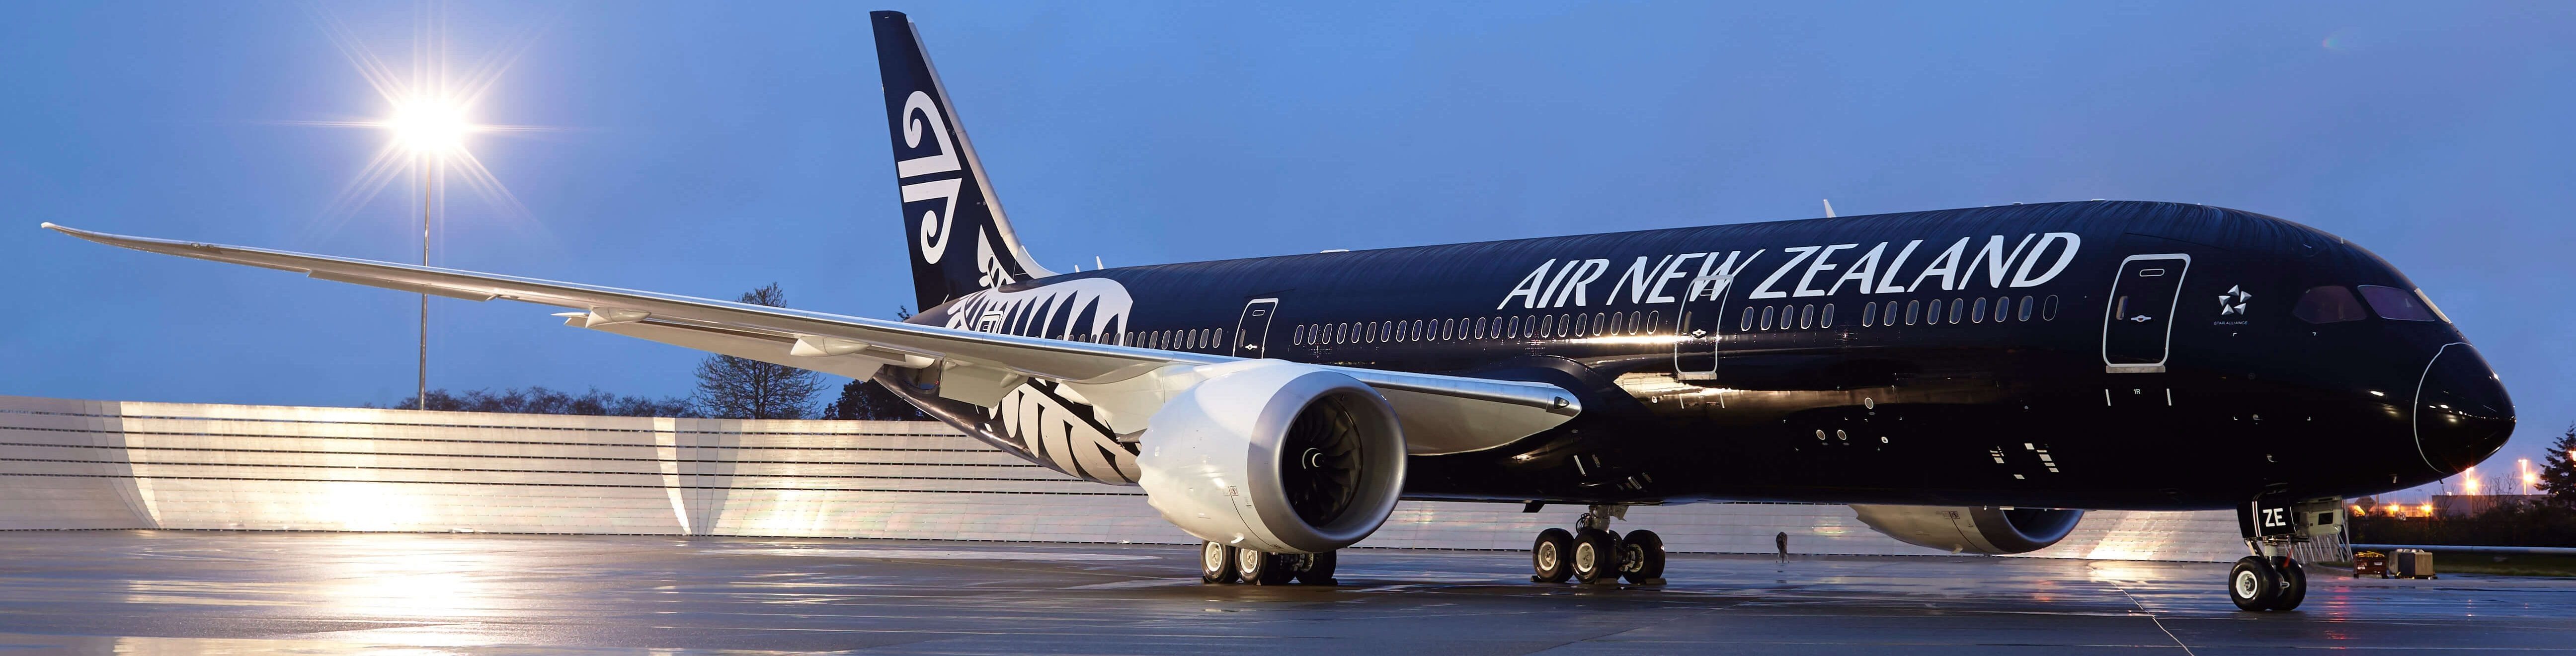 Air New Zealand uses GEnx-1B engine to power its Boeing Dreamliner fleet